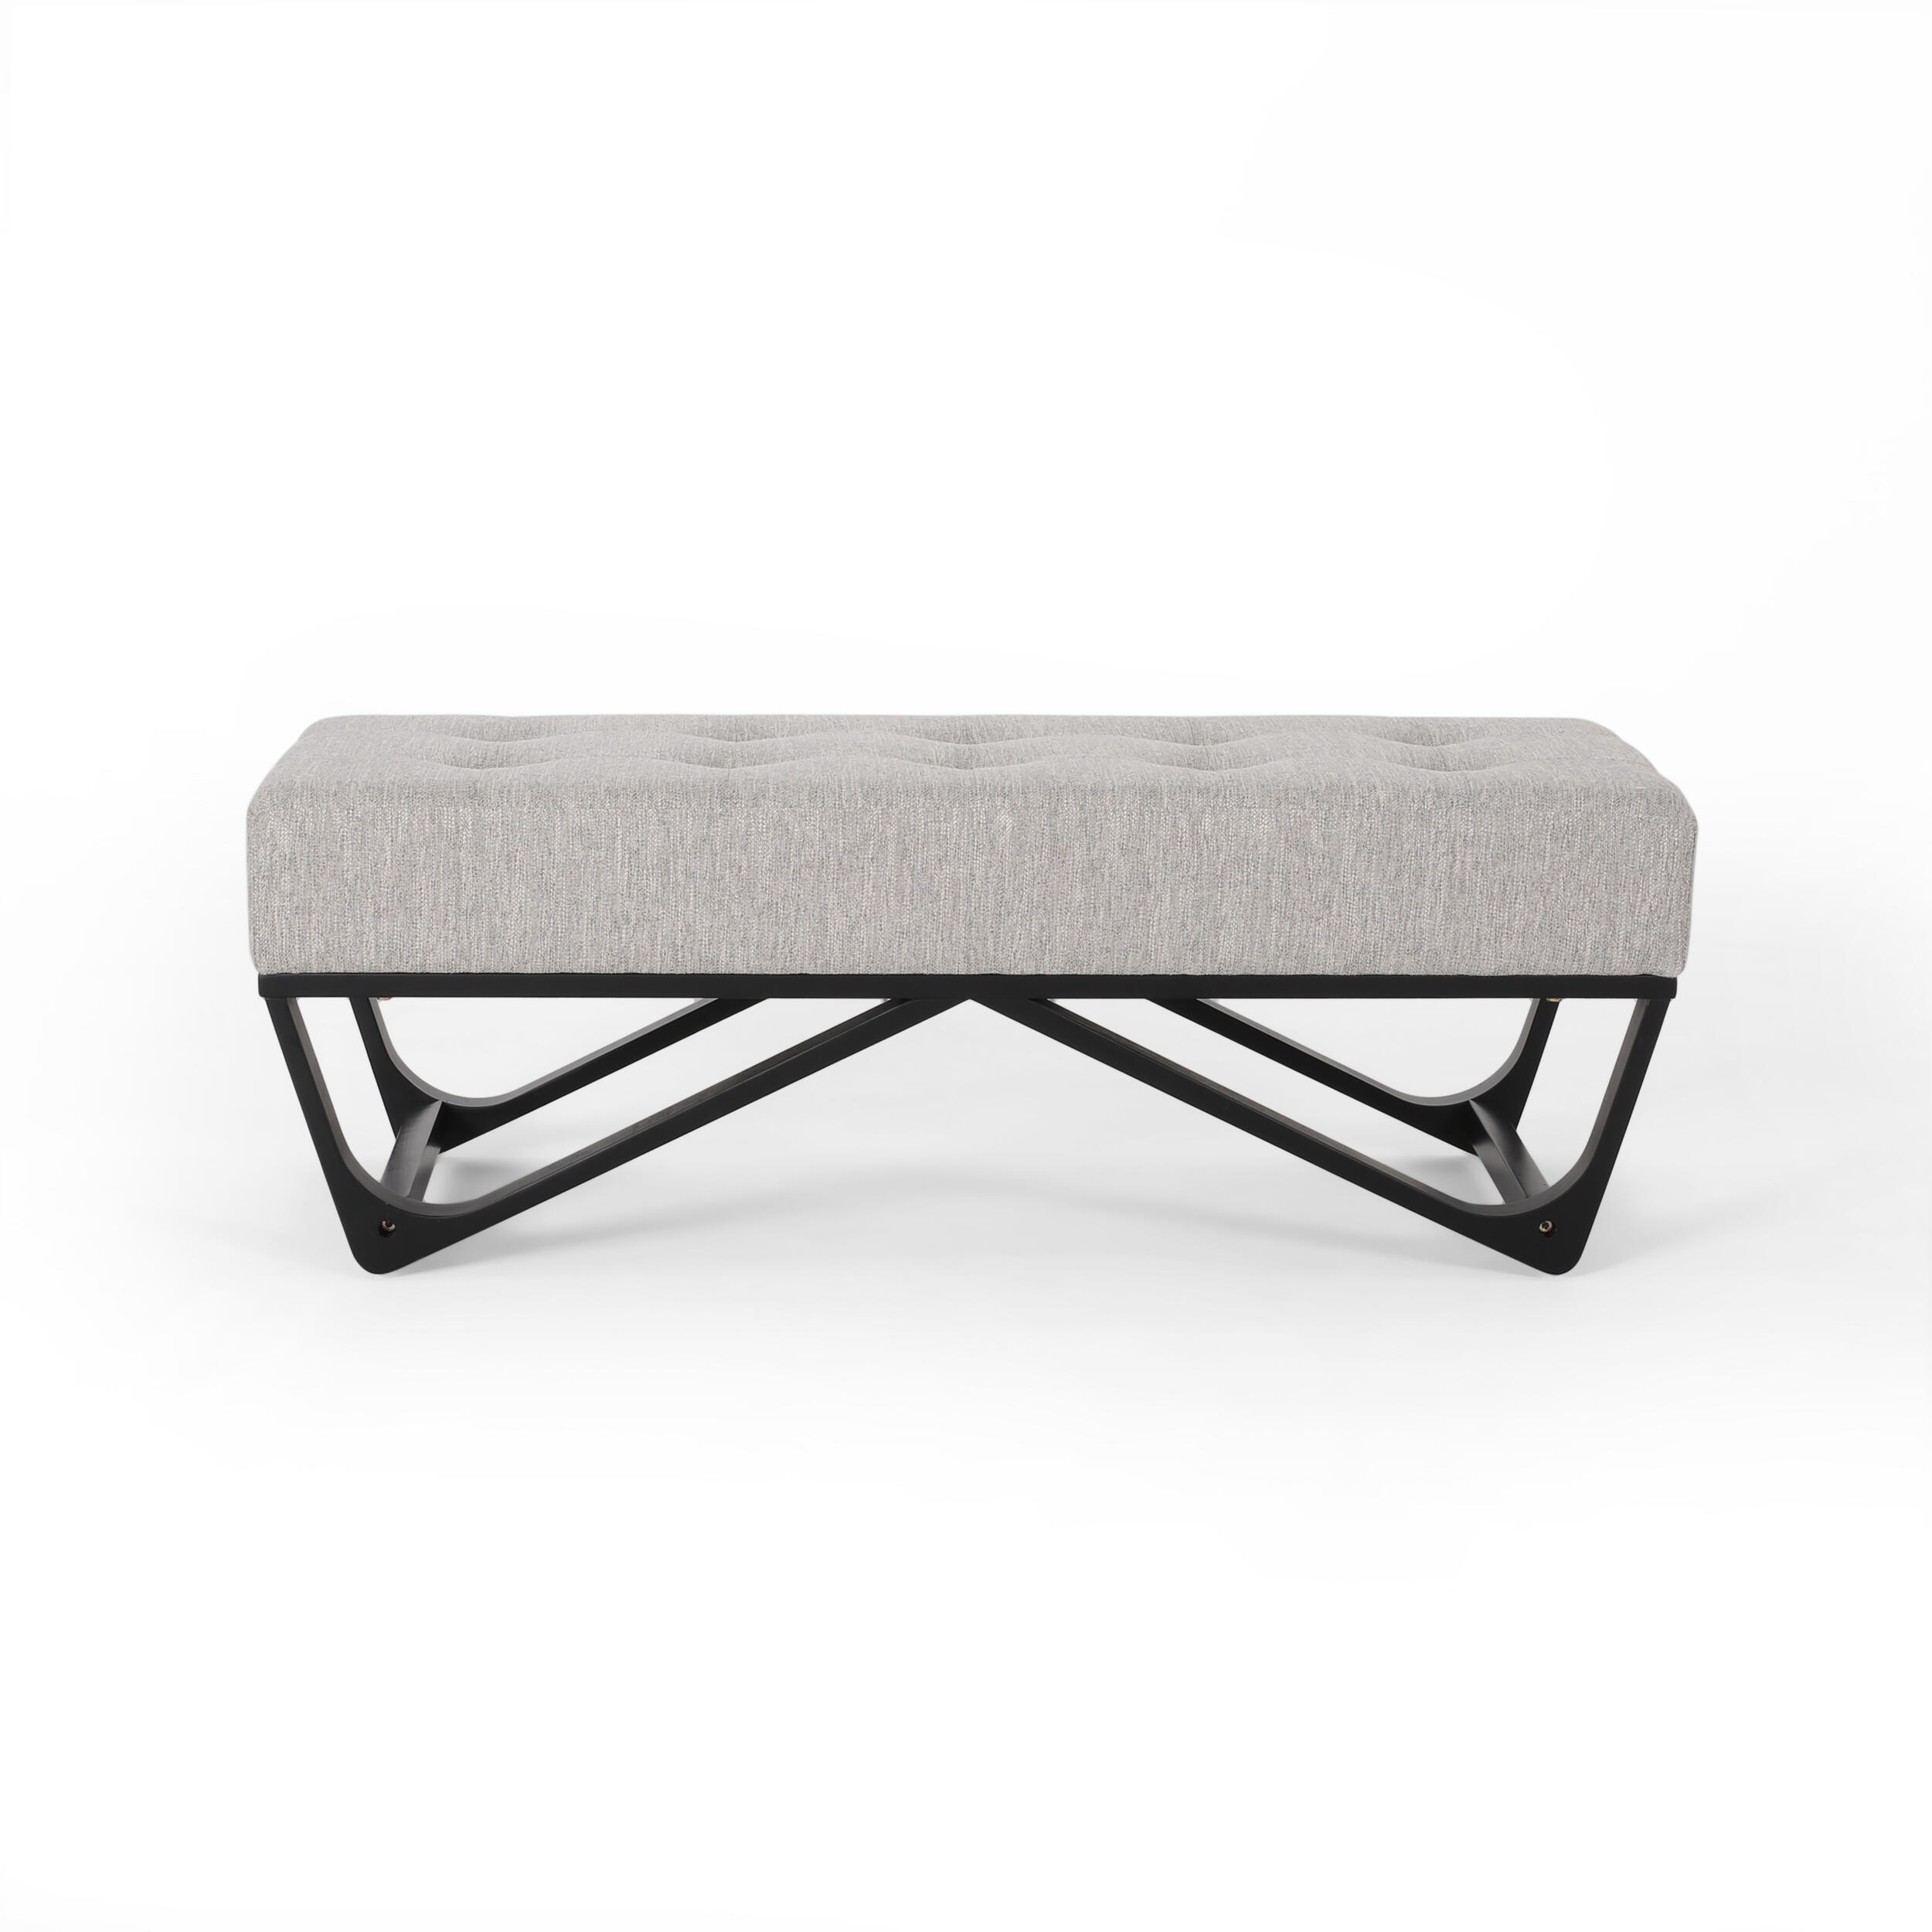 "Assisi 16.50"" x 47.25"" x 17.50"" Ottoman Bench"